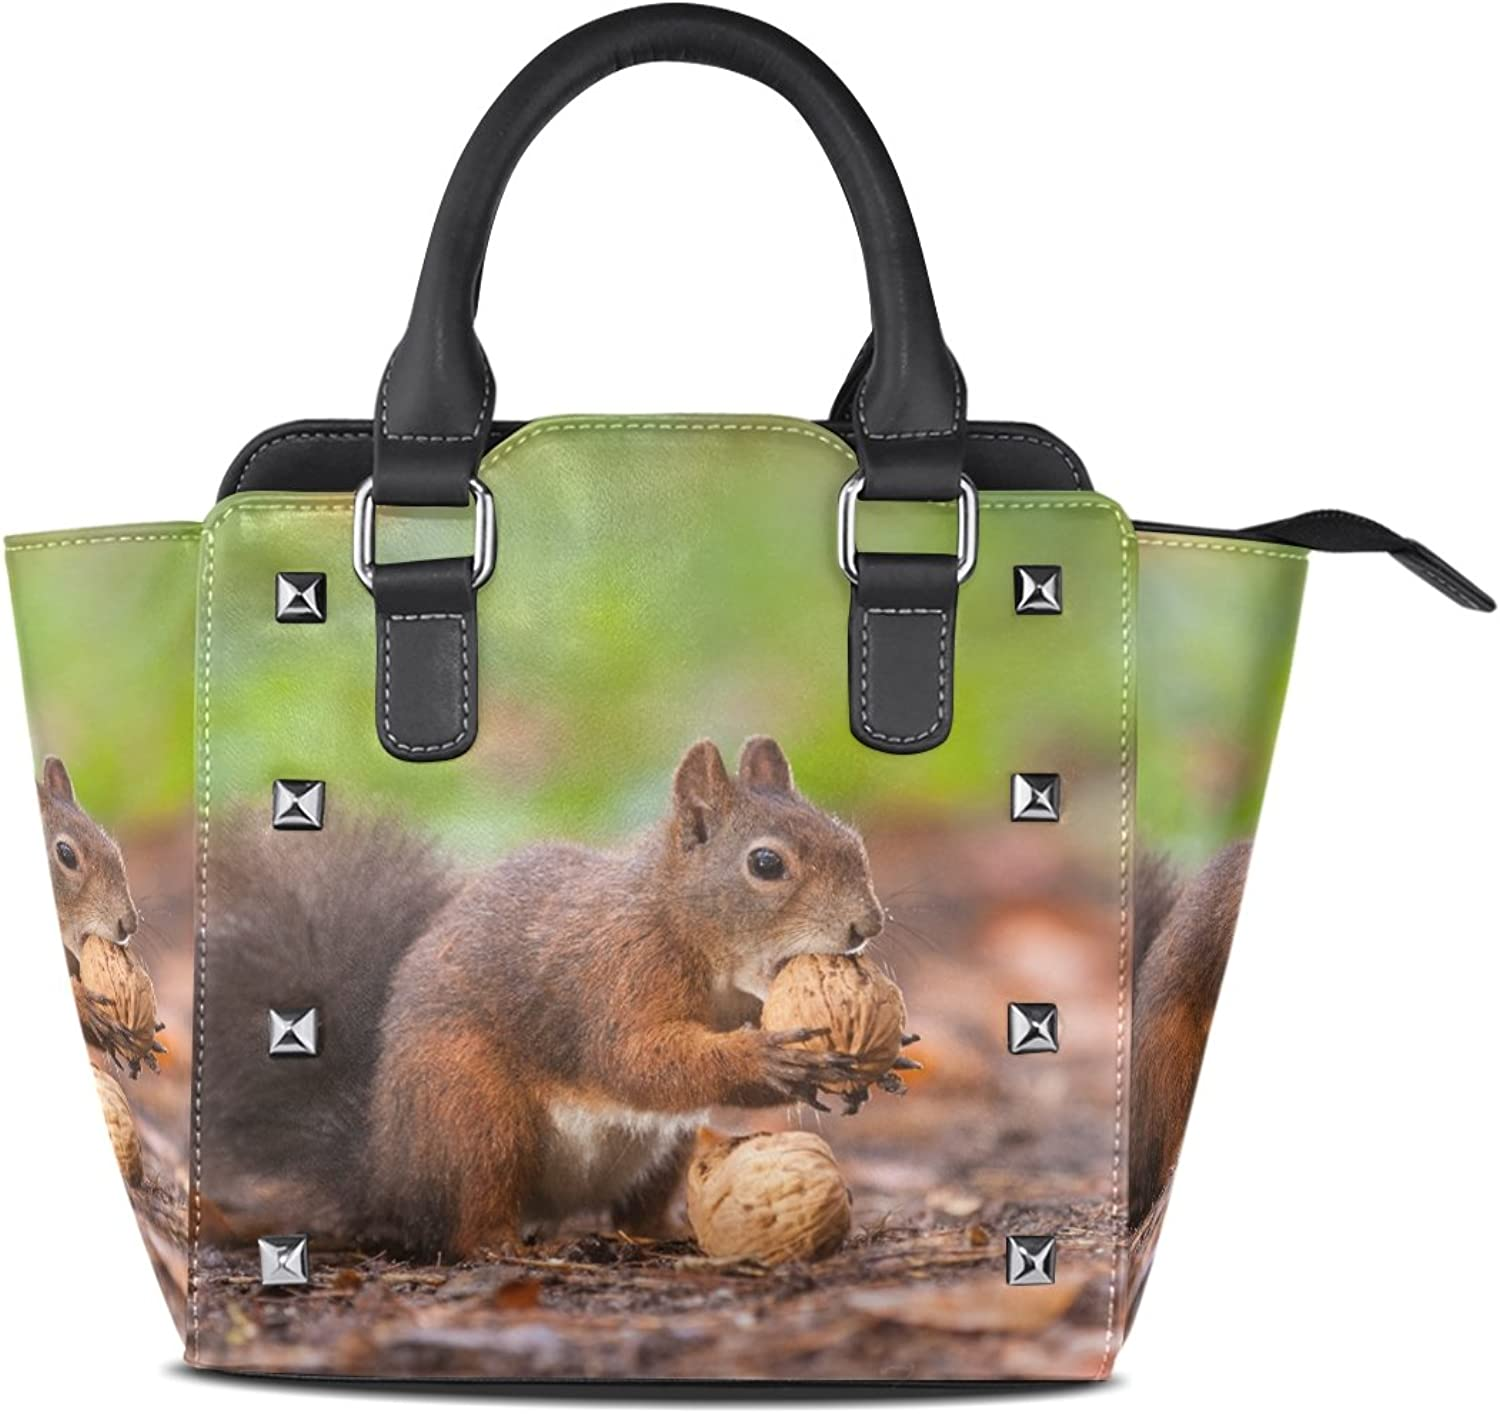 Sunlome Brown Squirrel with Nuts Print Handbags Women's PU Leather Top-Handle Shoulder Bags